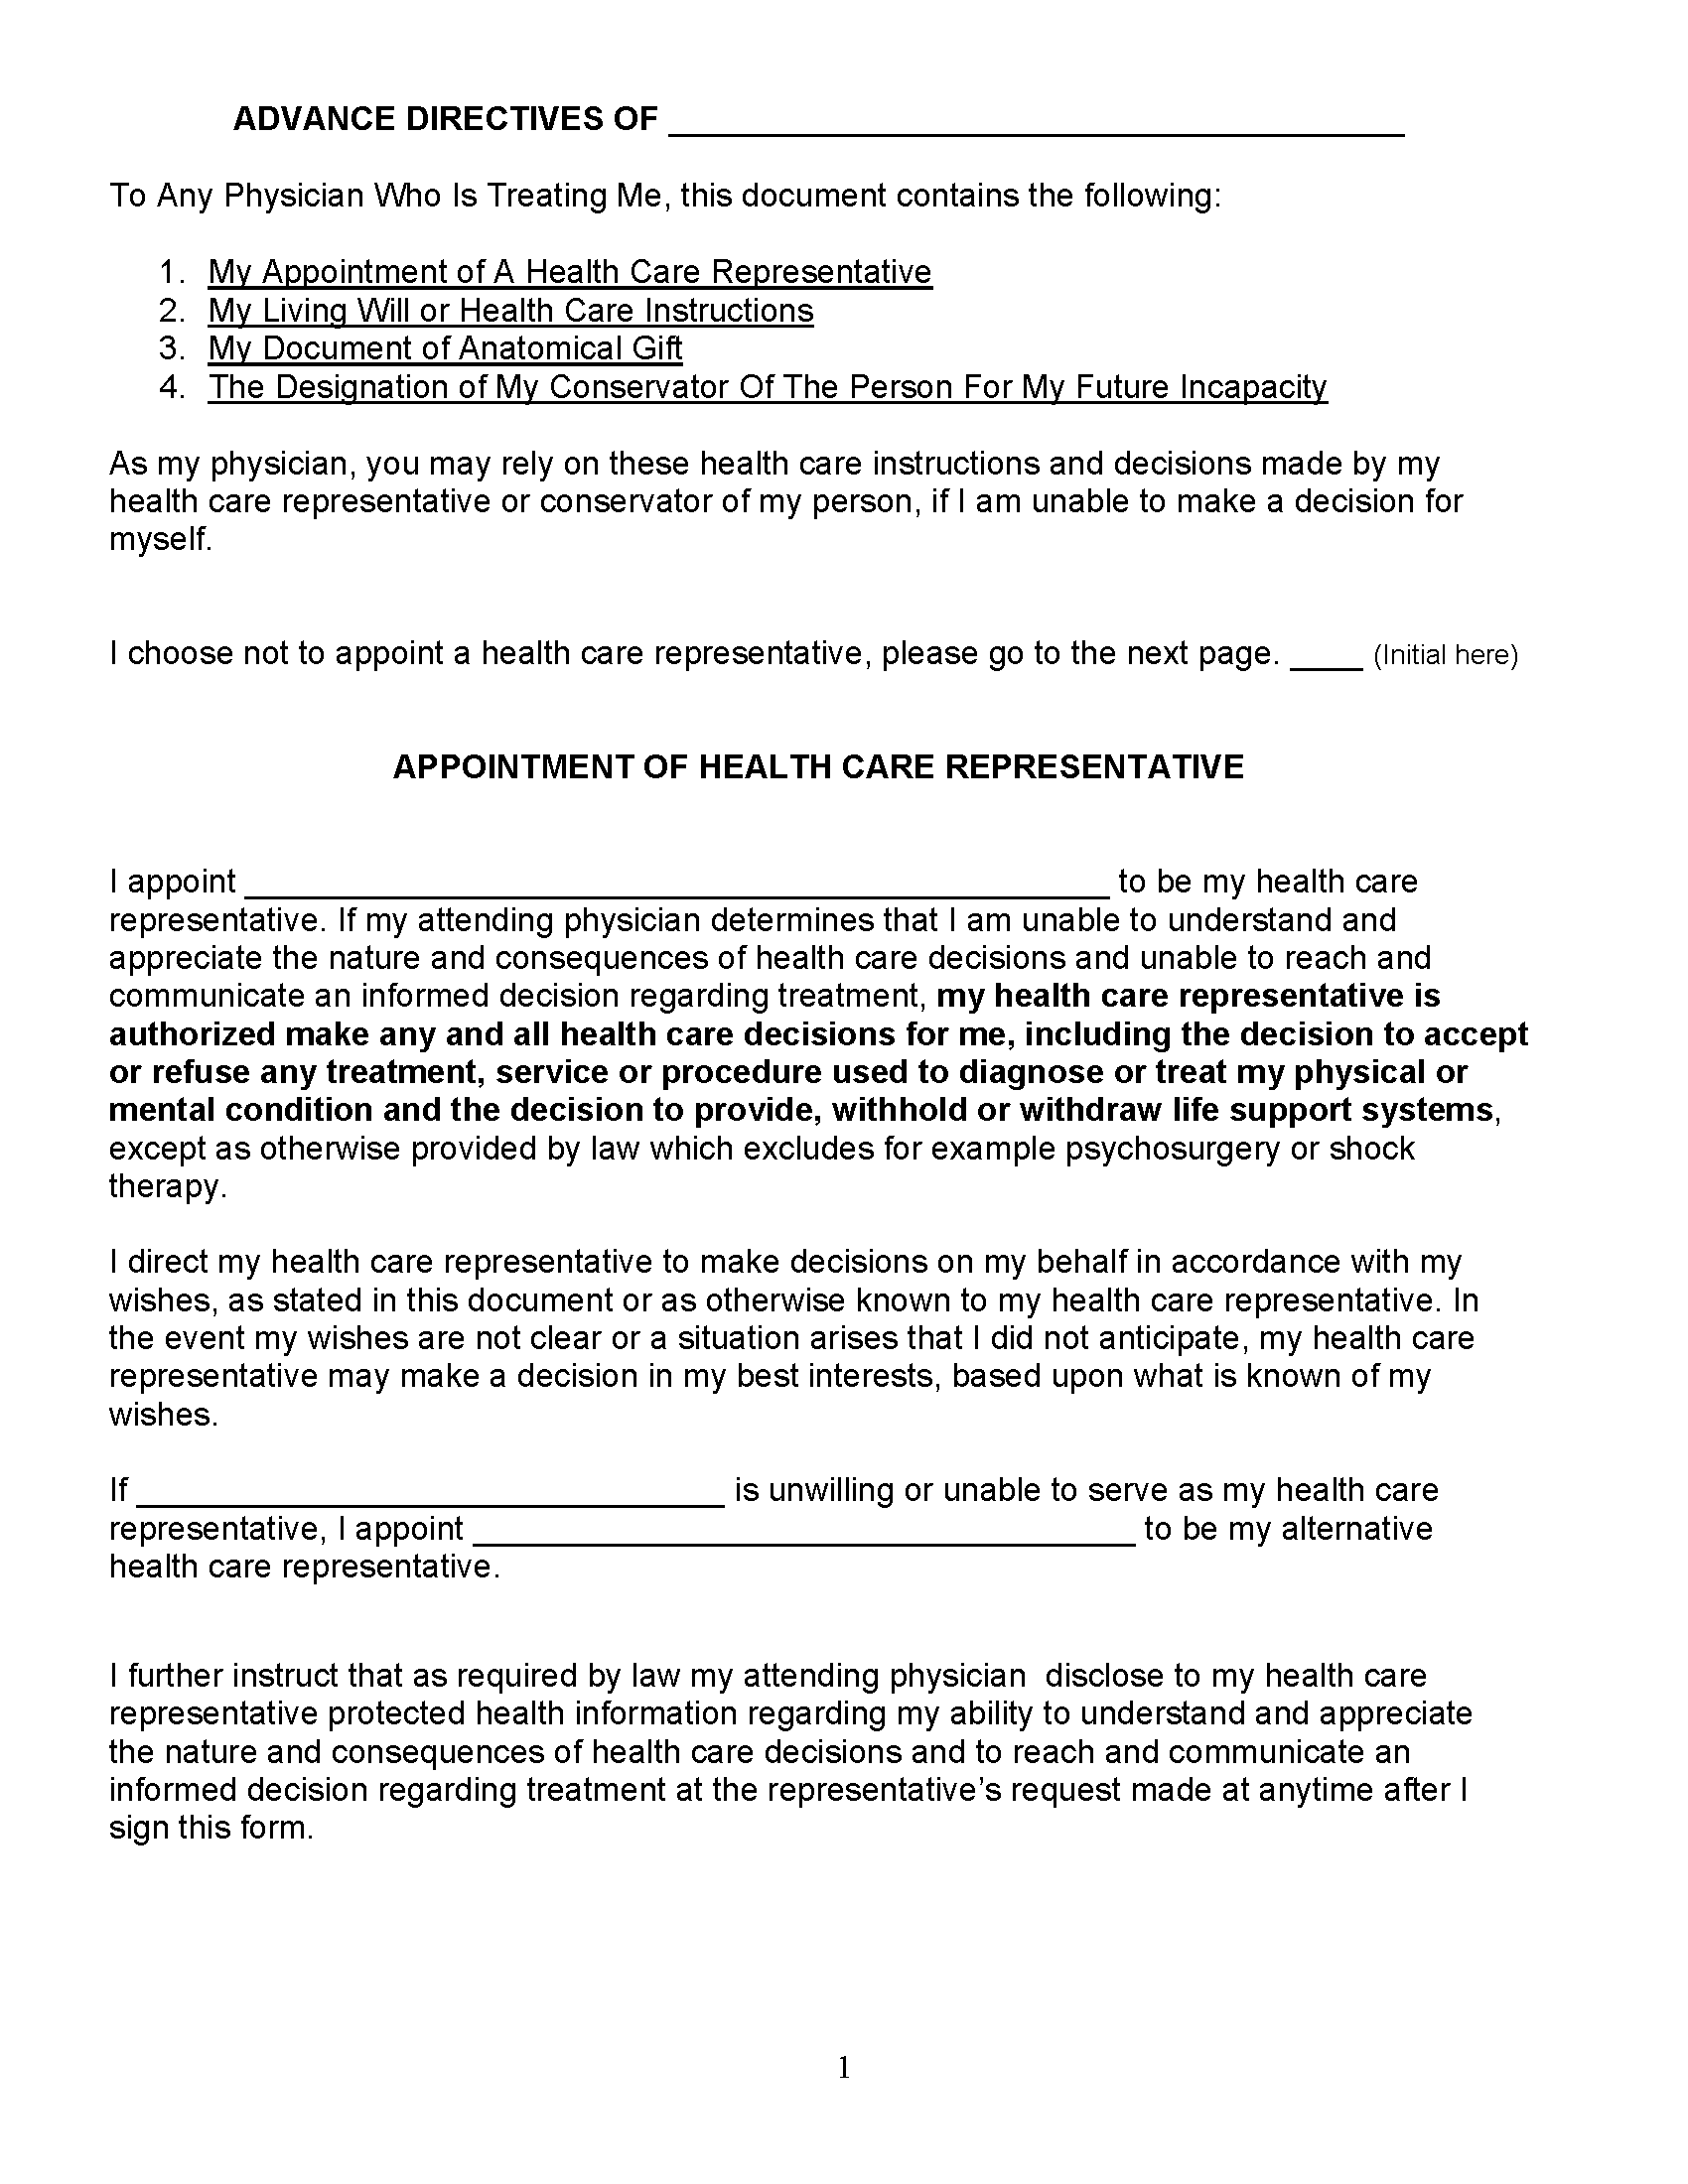 Connecticut Medical Power of Attorney Form